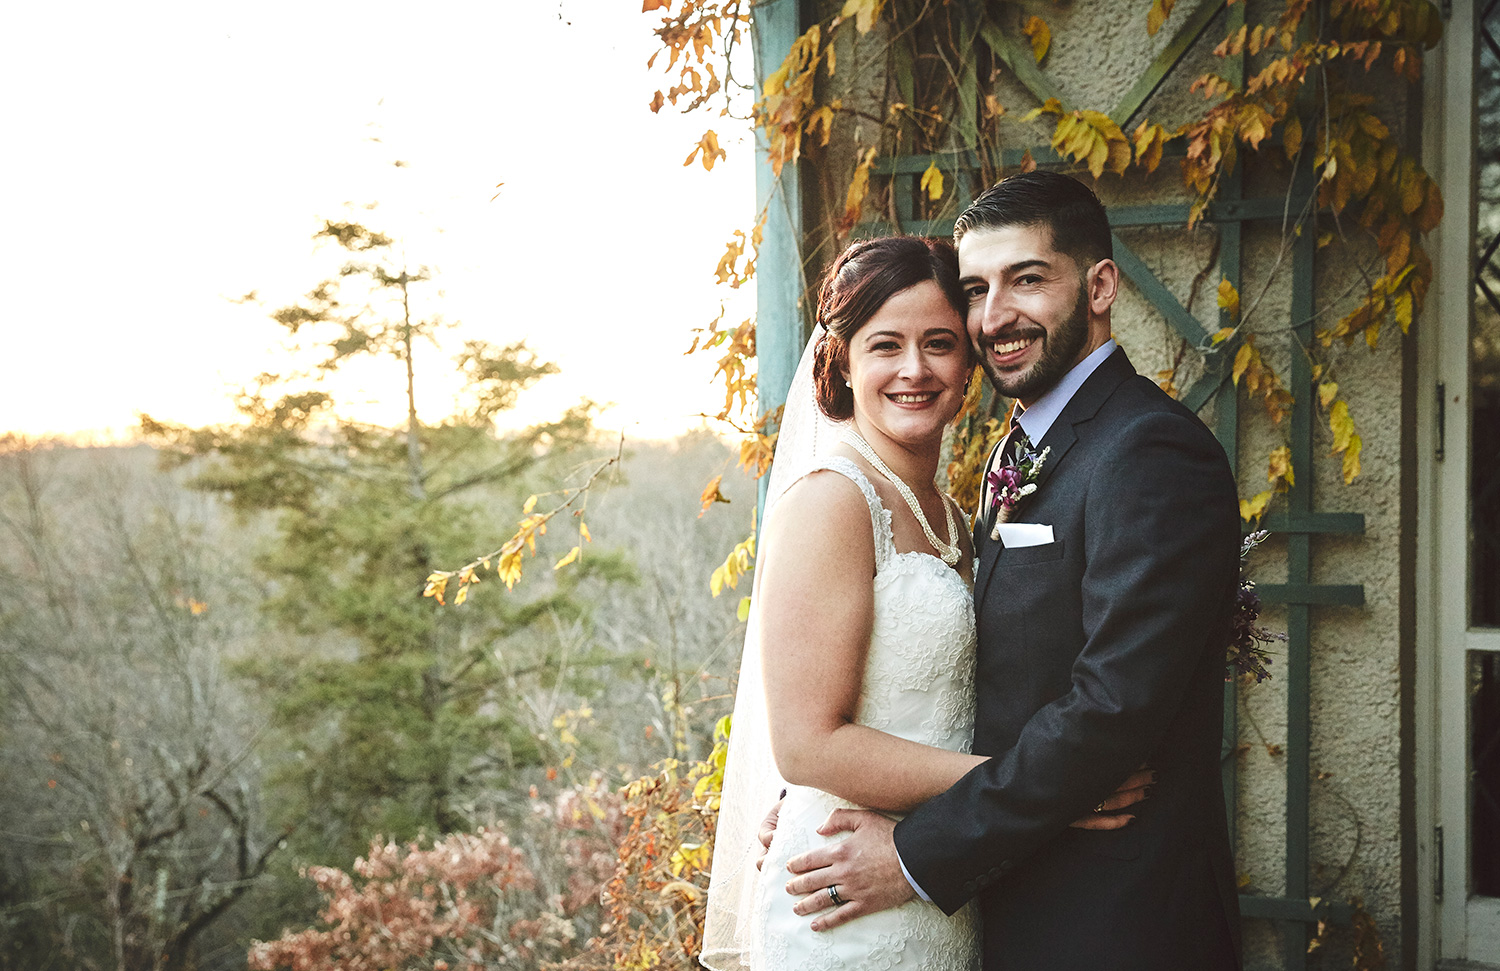 161119_ArrowParkLake&LodgeWedding_By_BriJohnsonWeddings_0126.jpg